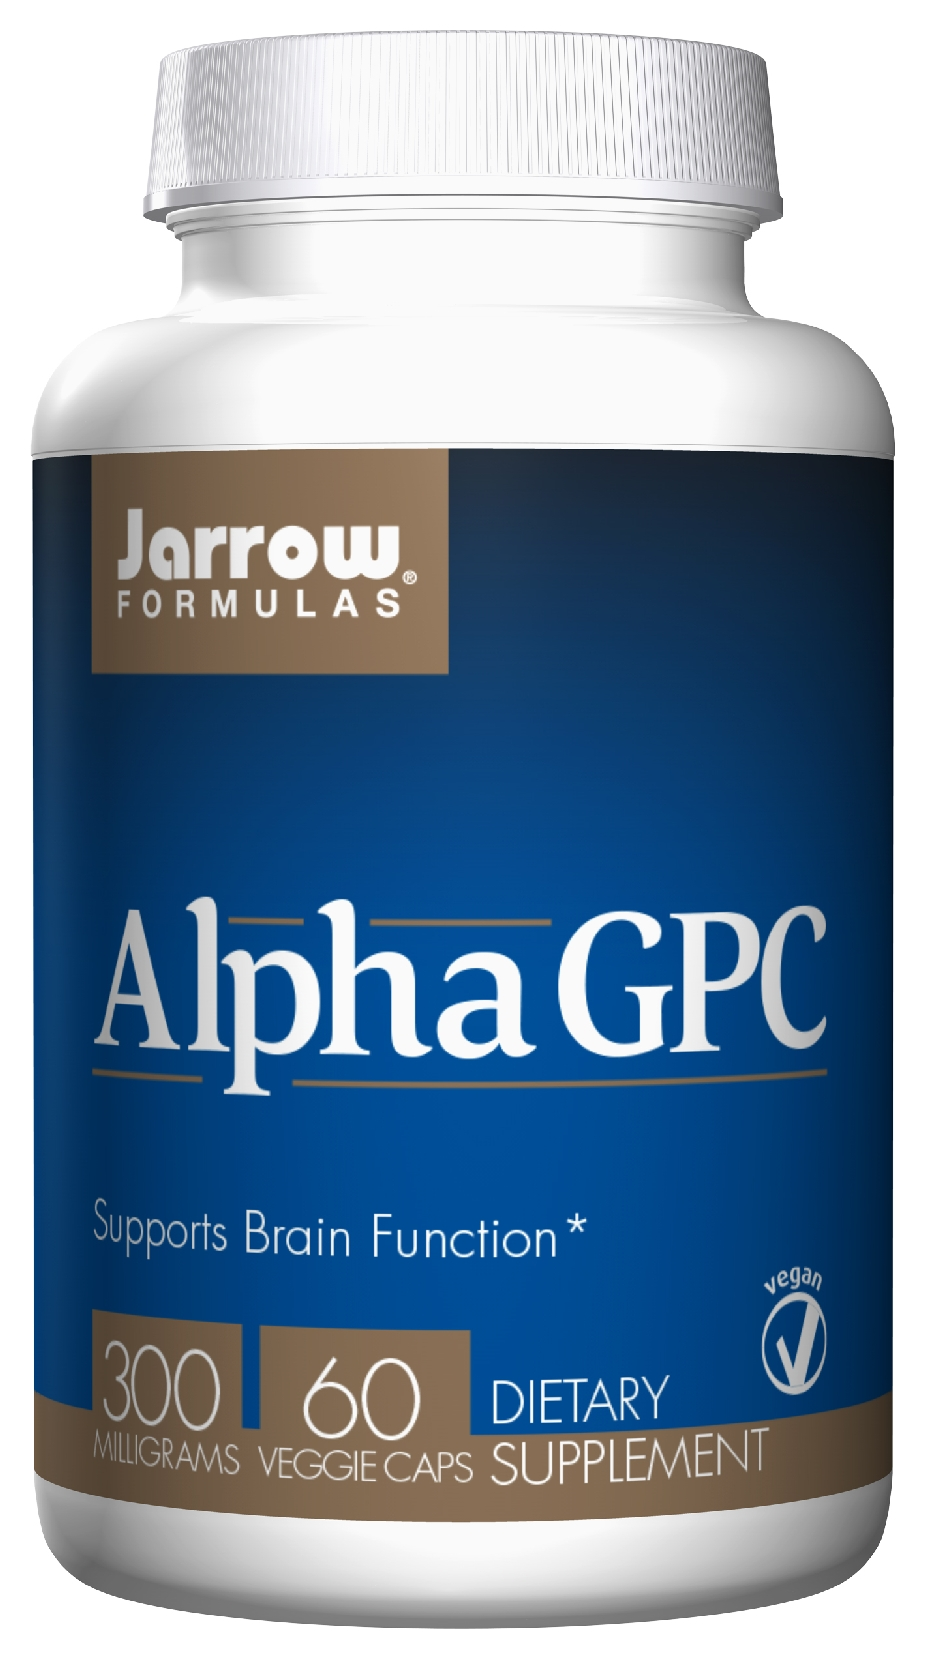 Alpha GPC 300 mg 60 Vegetarian caps by Jarrow Formulas